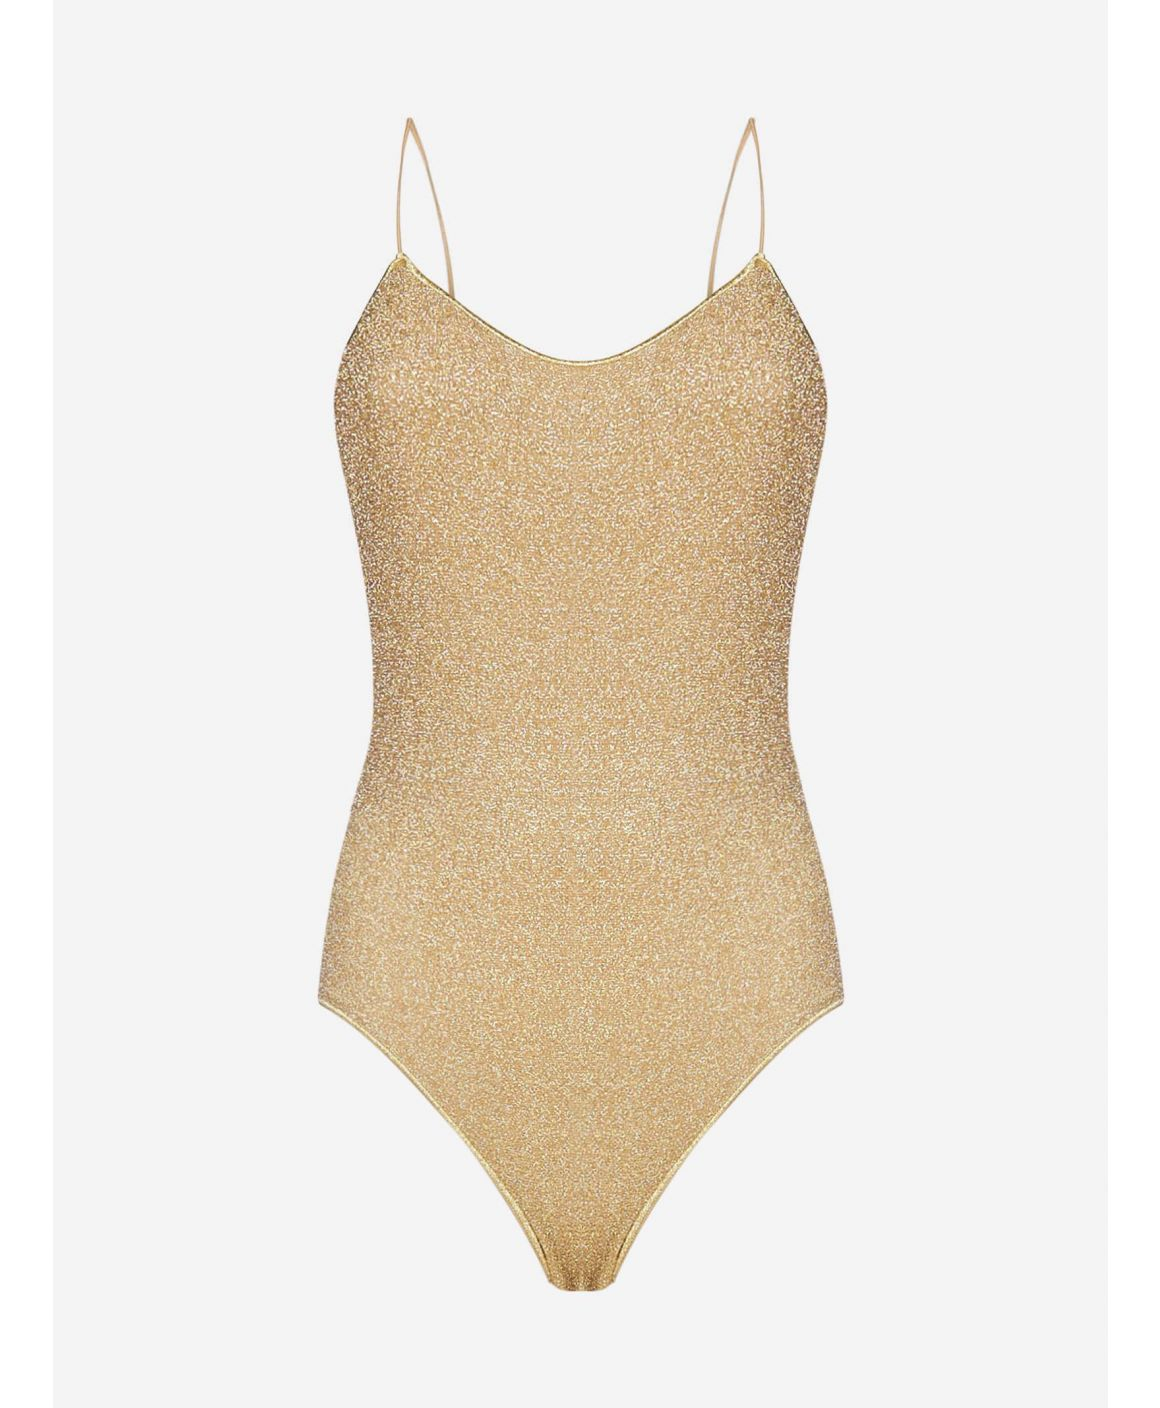 Lumiere lurex knit swimsuit